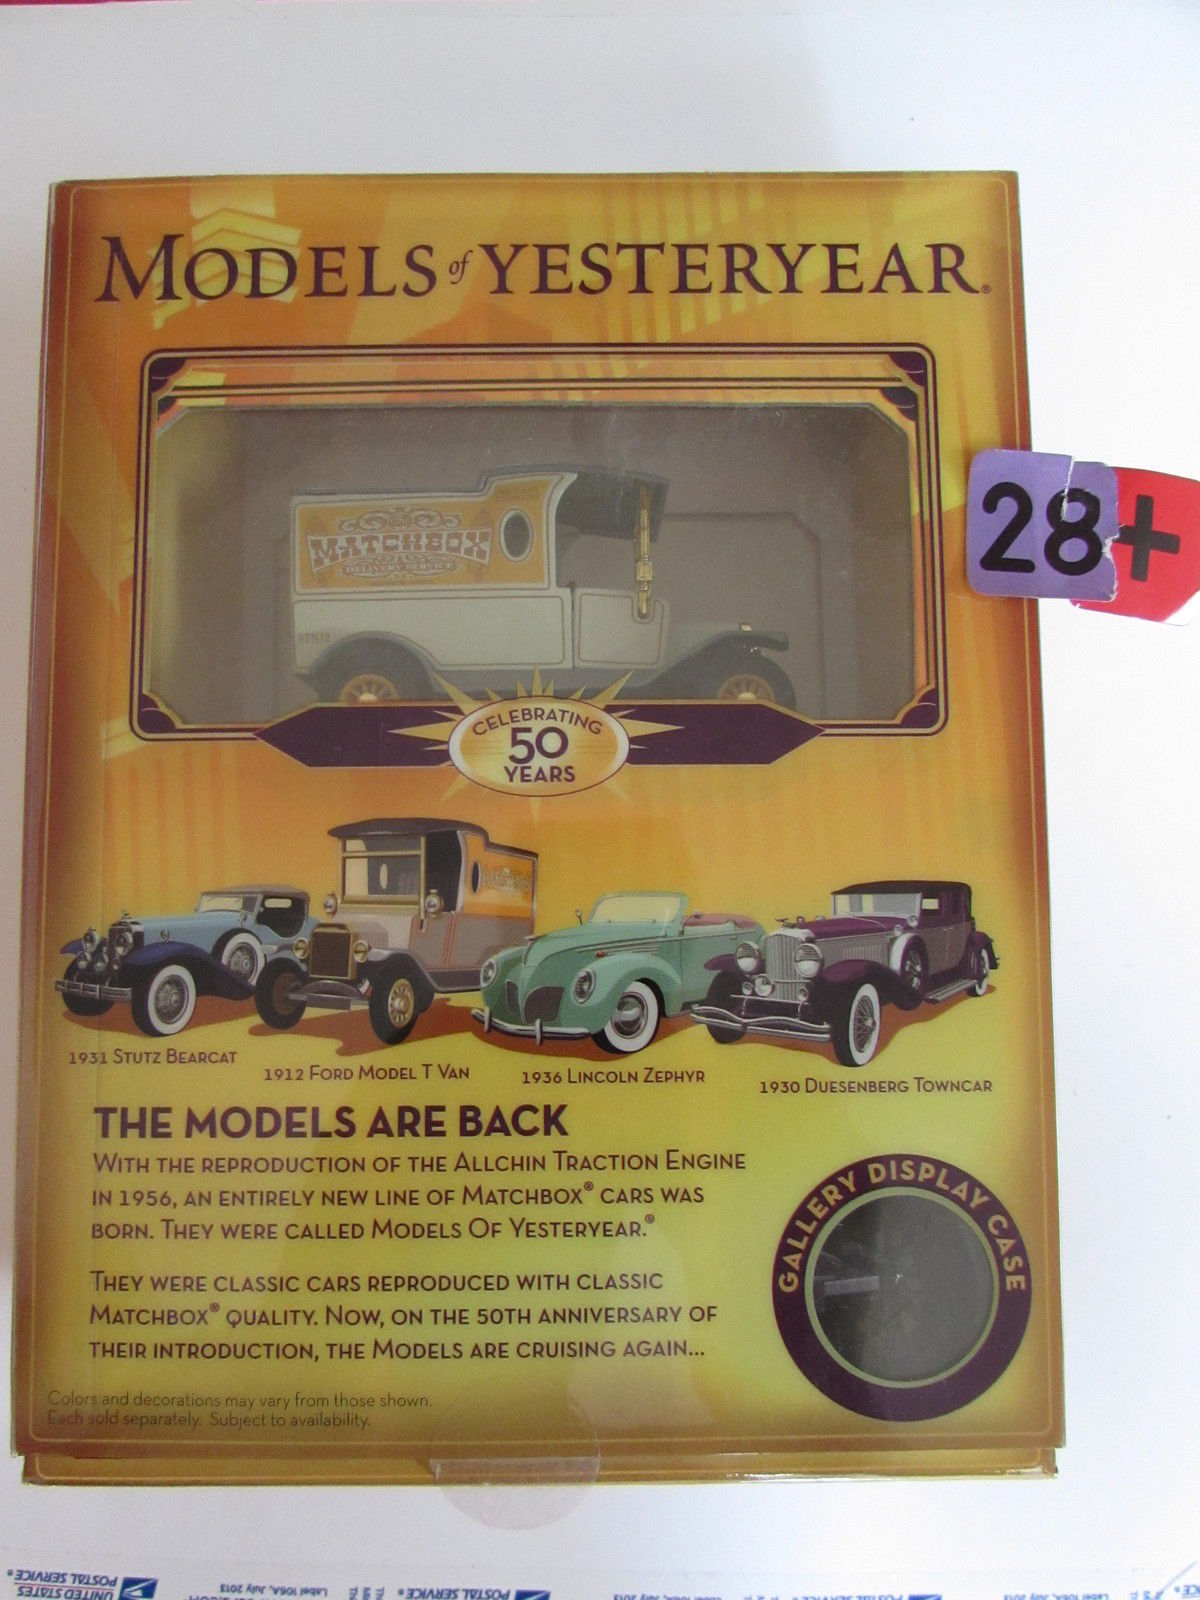 MATCHBOX MODELS OF YESTERDAY - CELEBRATING 50 YEARS - 1912 FORD MODEL T VAN